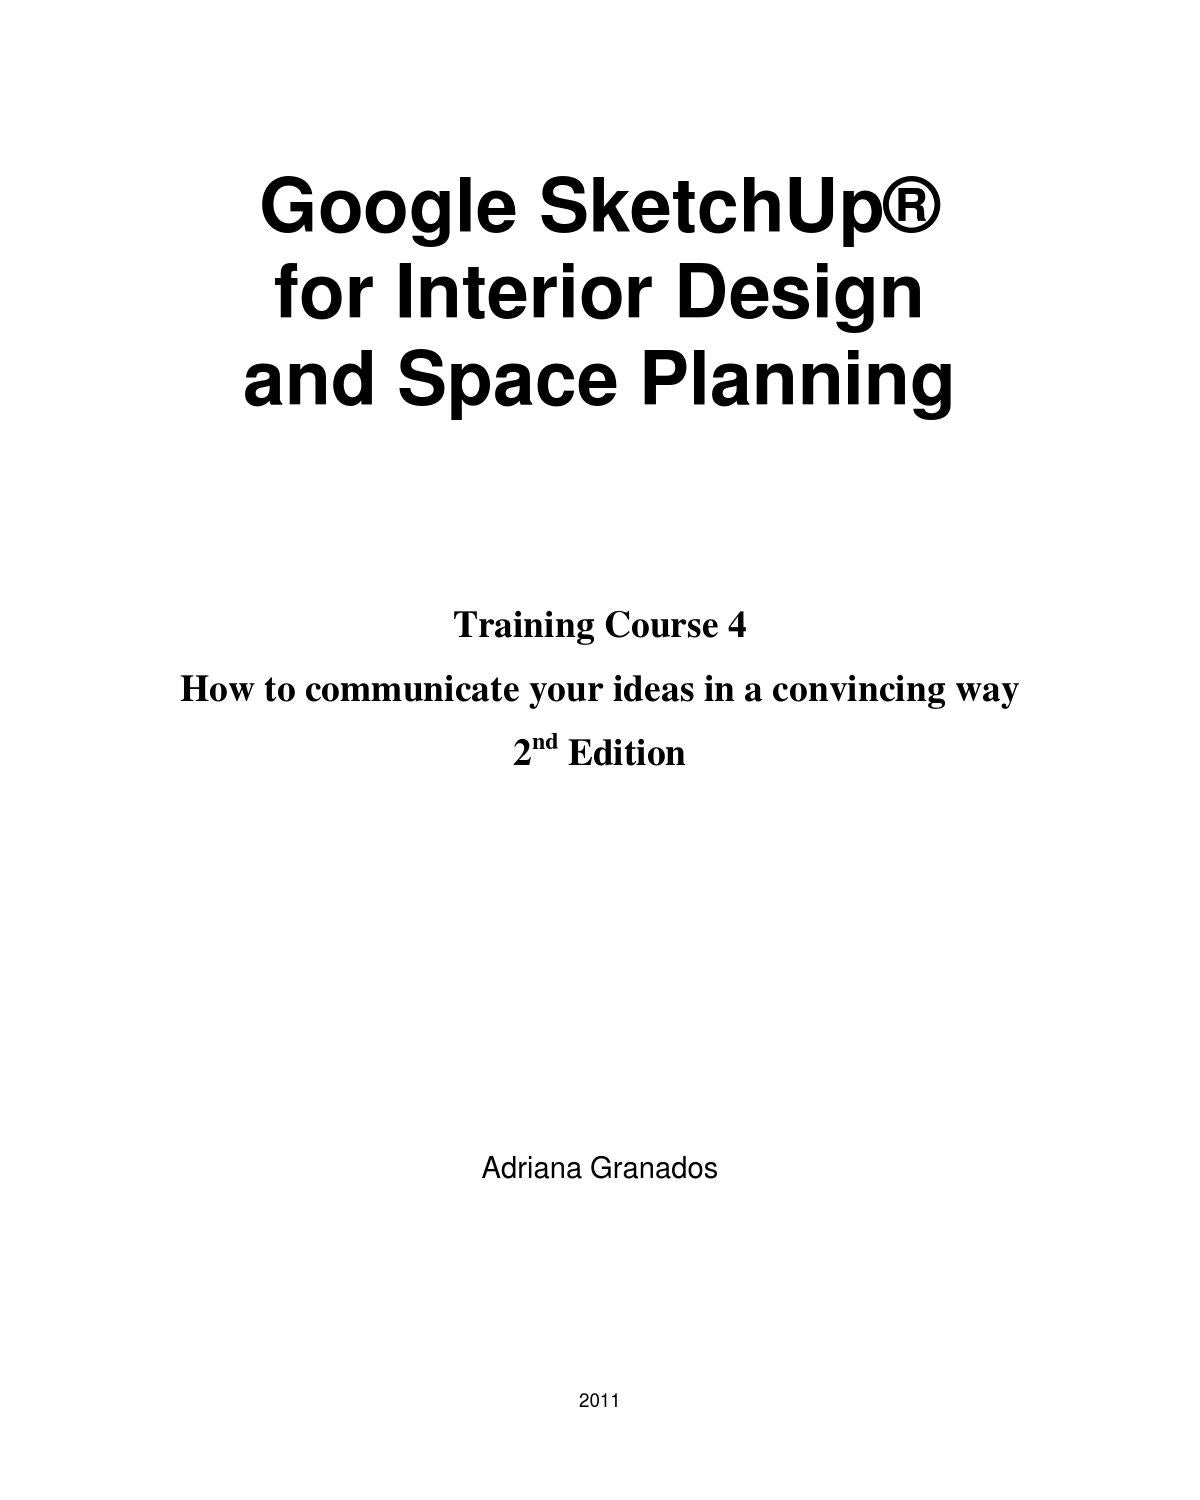 Google Sketchup for Interior Design & Space Planning